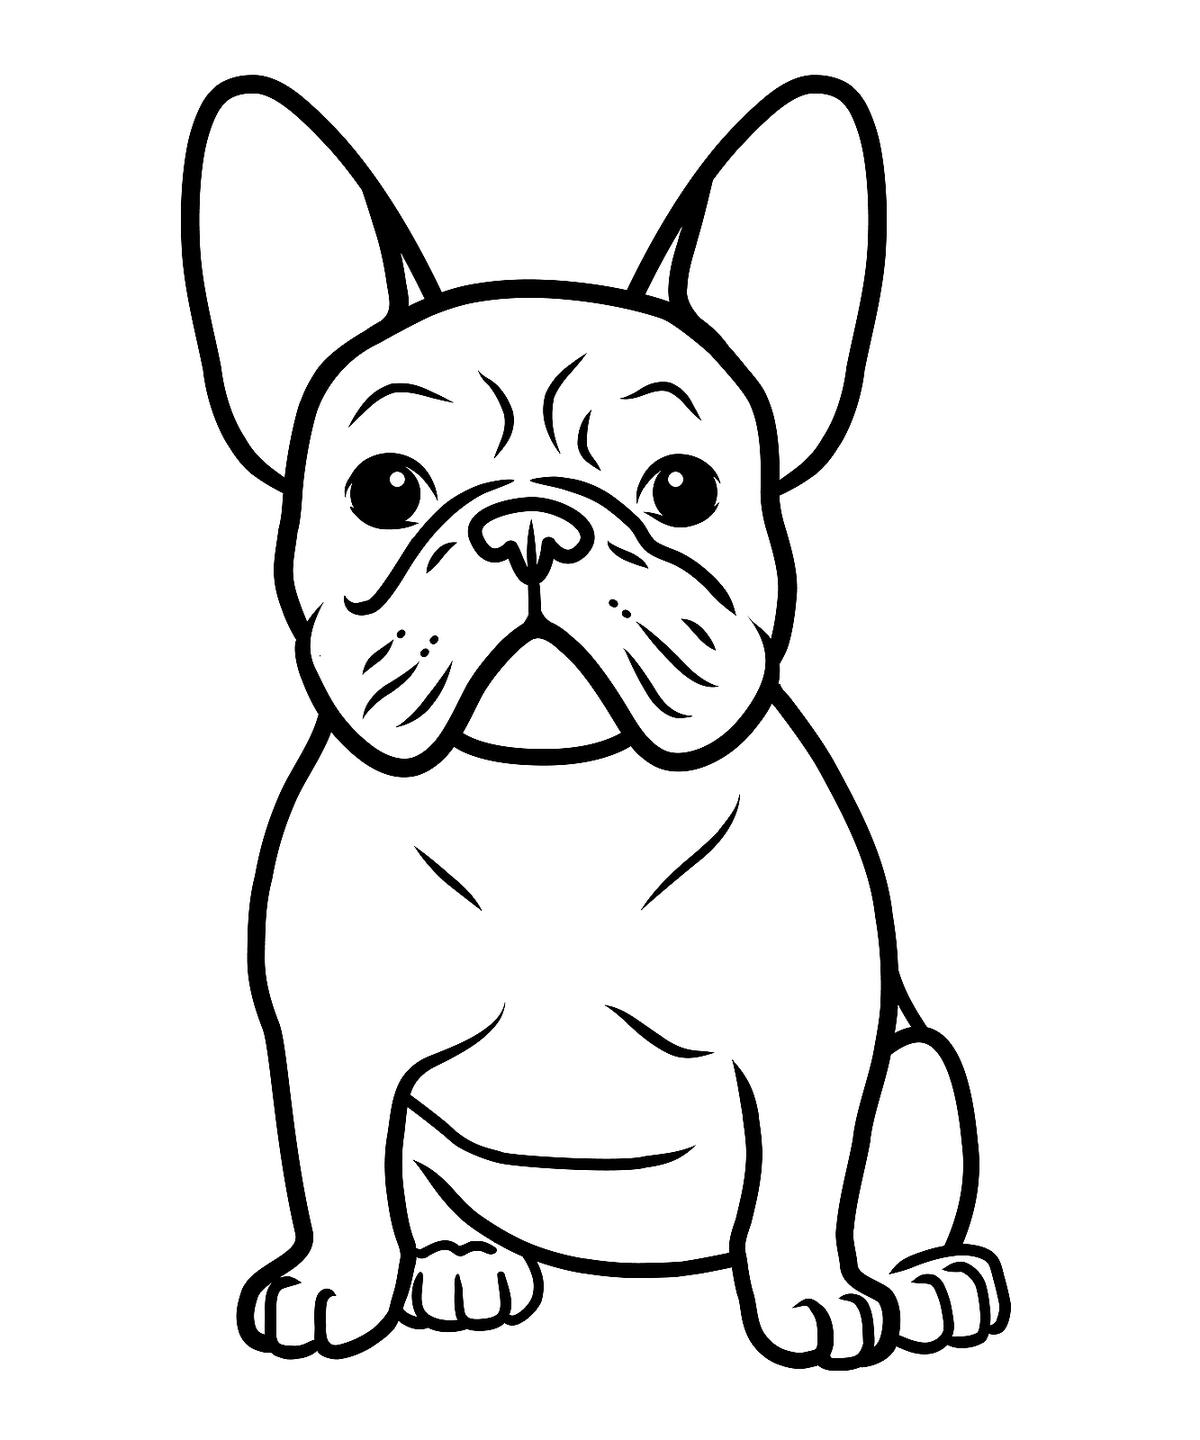 coloring pages of dogs printable free printable puppies coloring pages for kids dogs of printable coloring pages